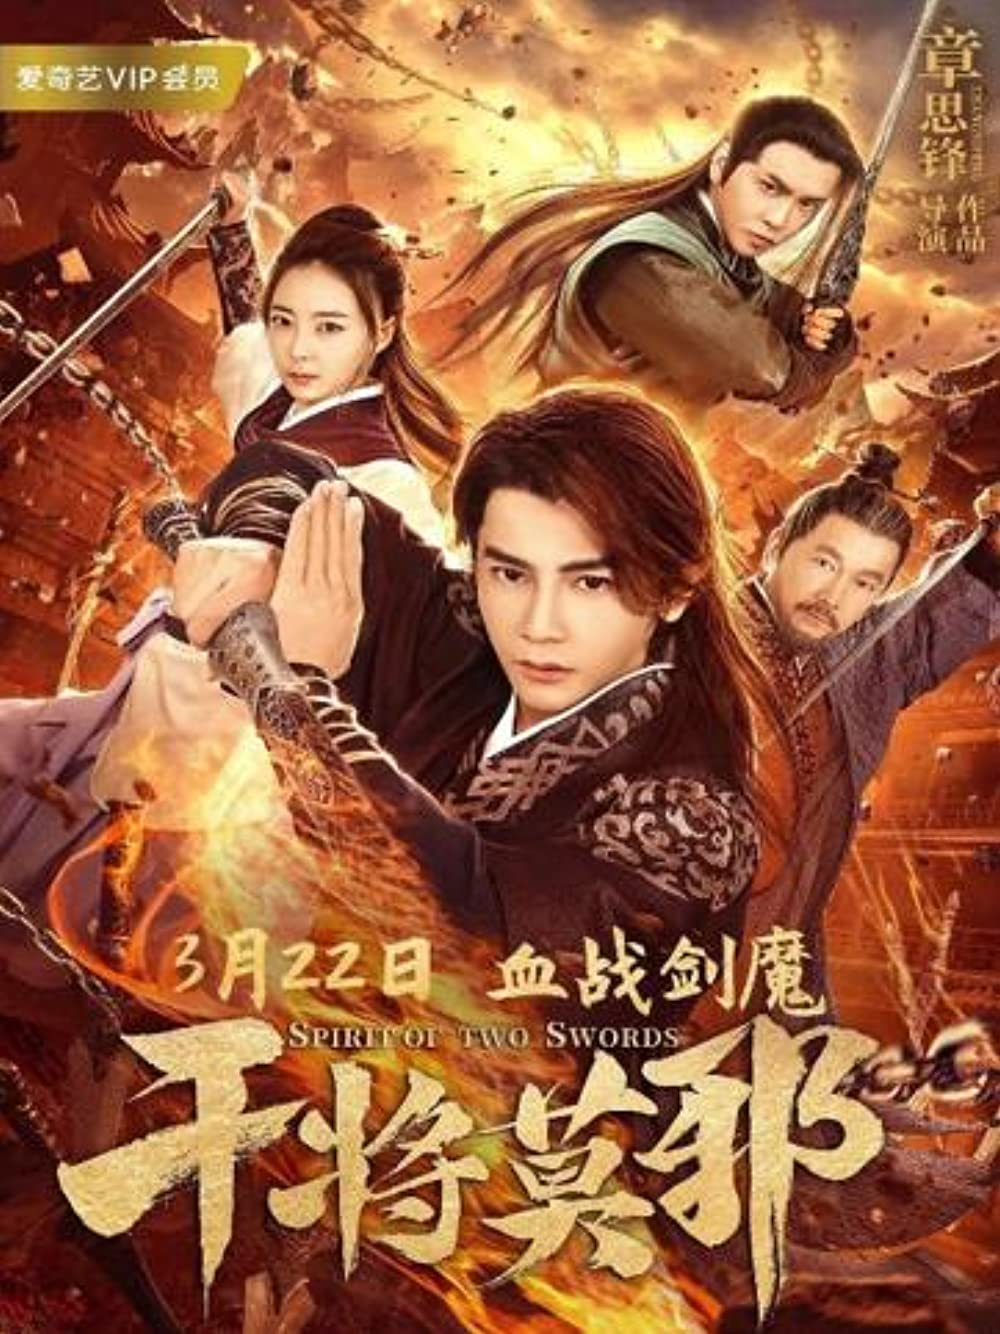 Spirit of Two Swords (2020) Hindi (Voice Over) Dubbed+ Chinese [Dual Audio] WebRip 720p [1XBET]